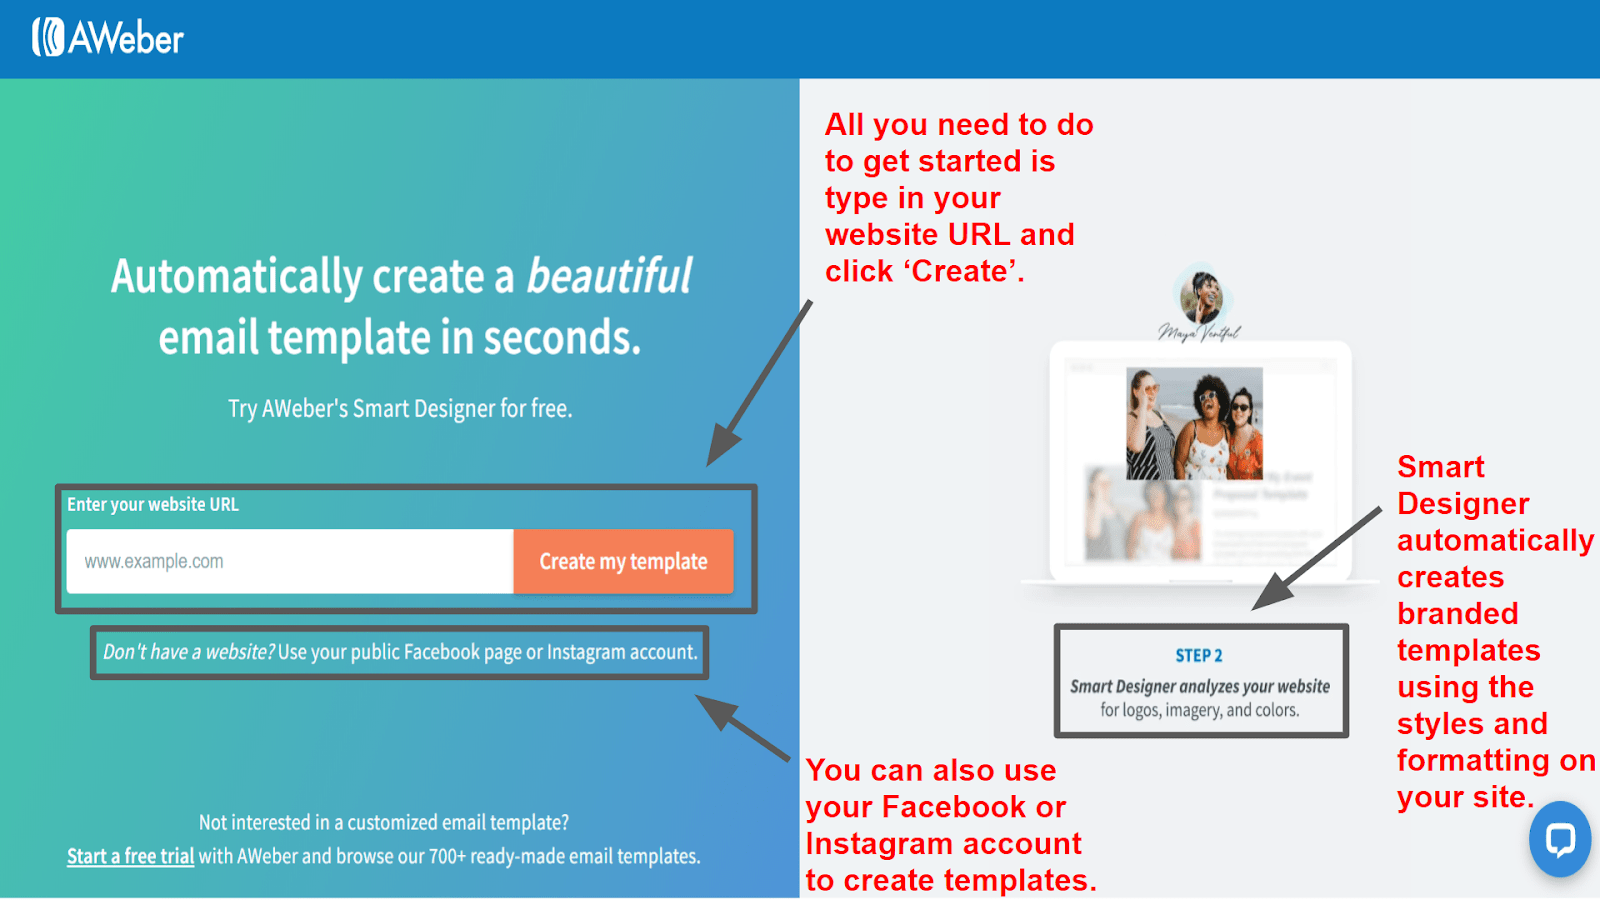 The AWeber Smart Designer for creating customized templates.